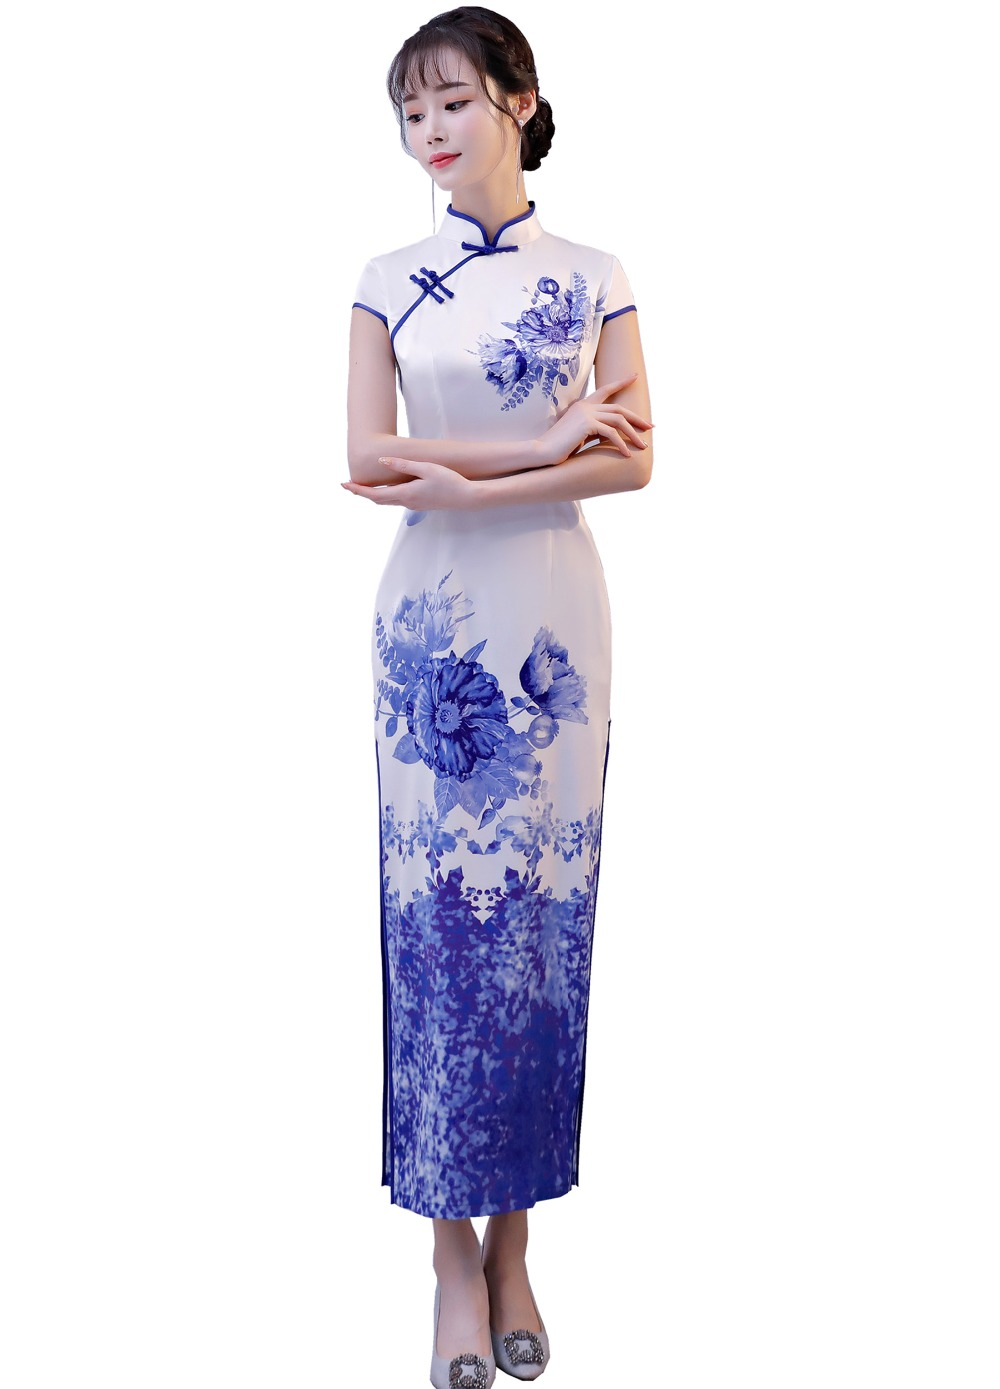 Shanghai Story National Trend Dress Chinese traditional dress Chinese Oriental dress Long Cheongsam with Lining Qipao